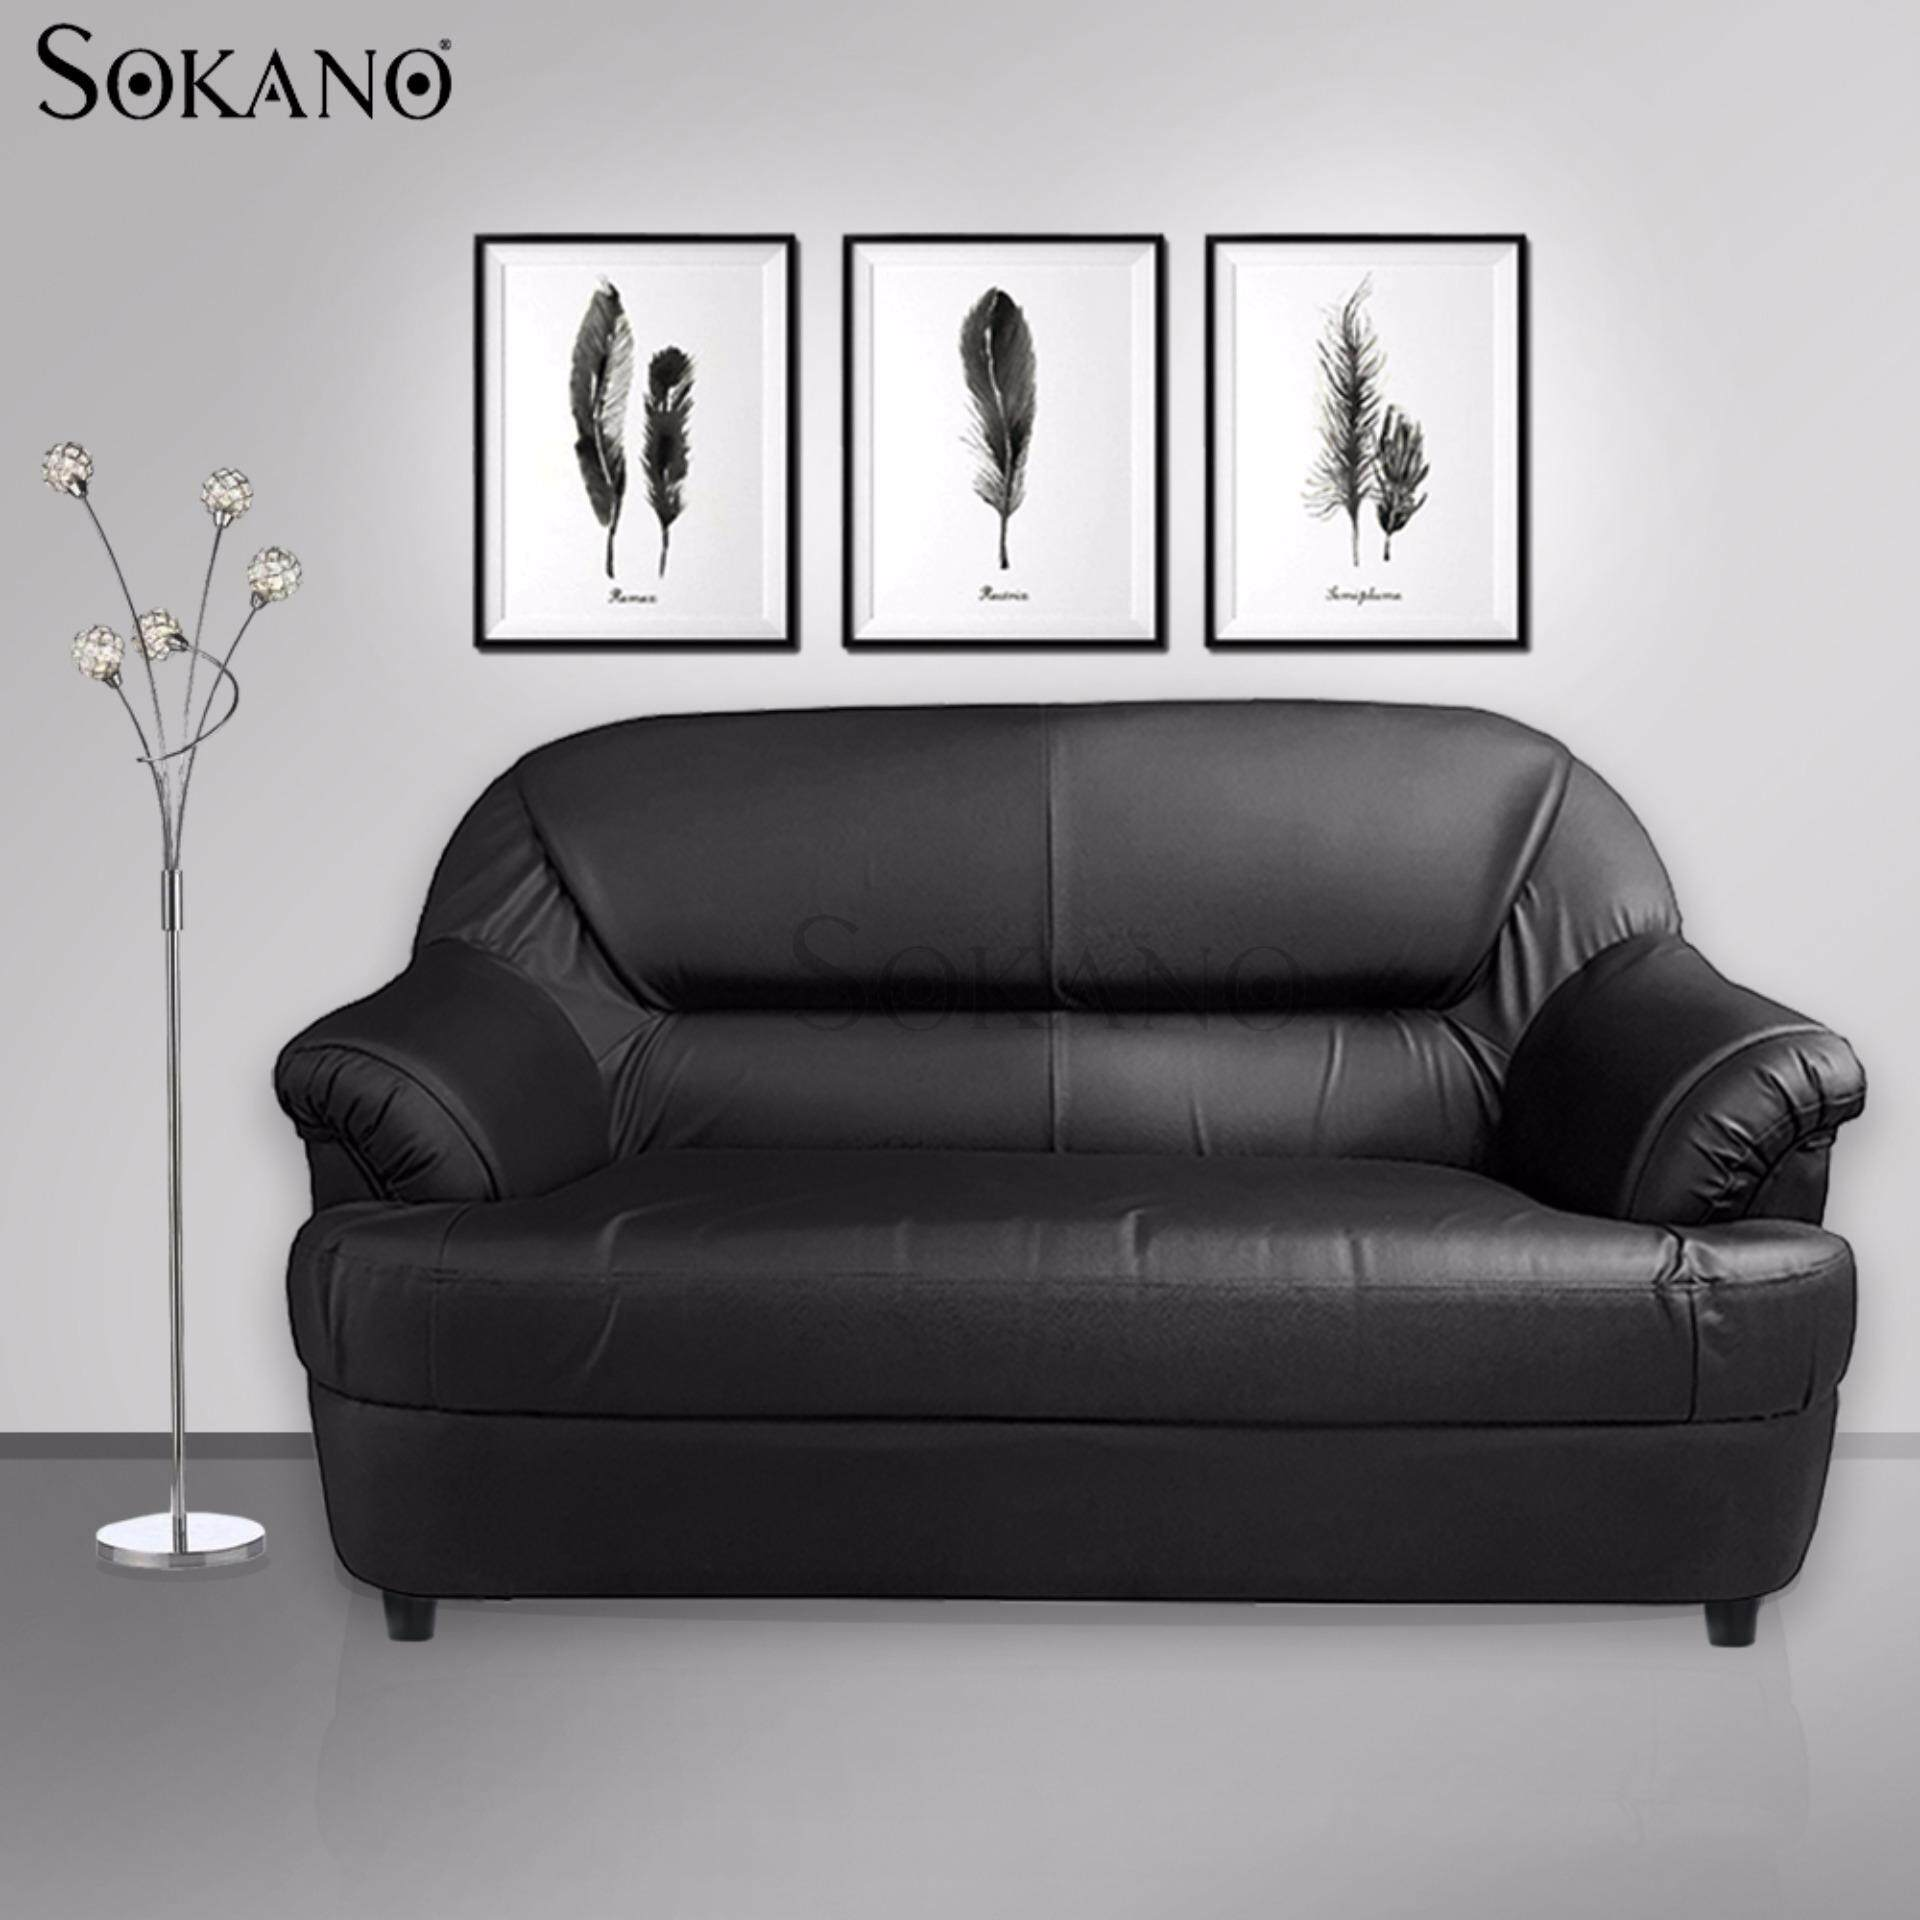 SOKANO MS247 PVC Leather Sofa - 2 seater (Black)